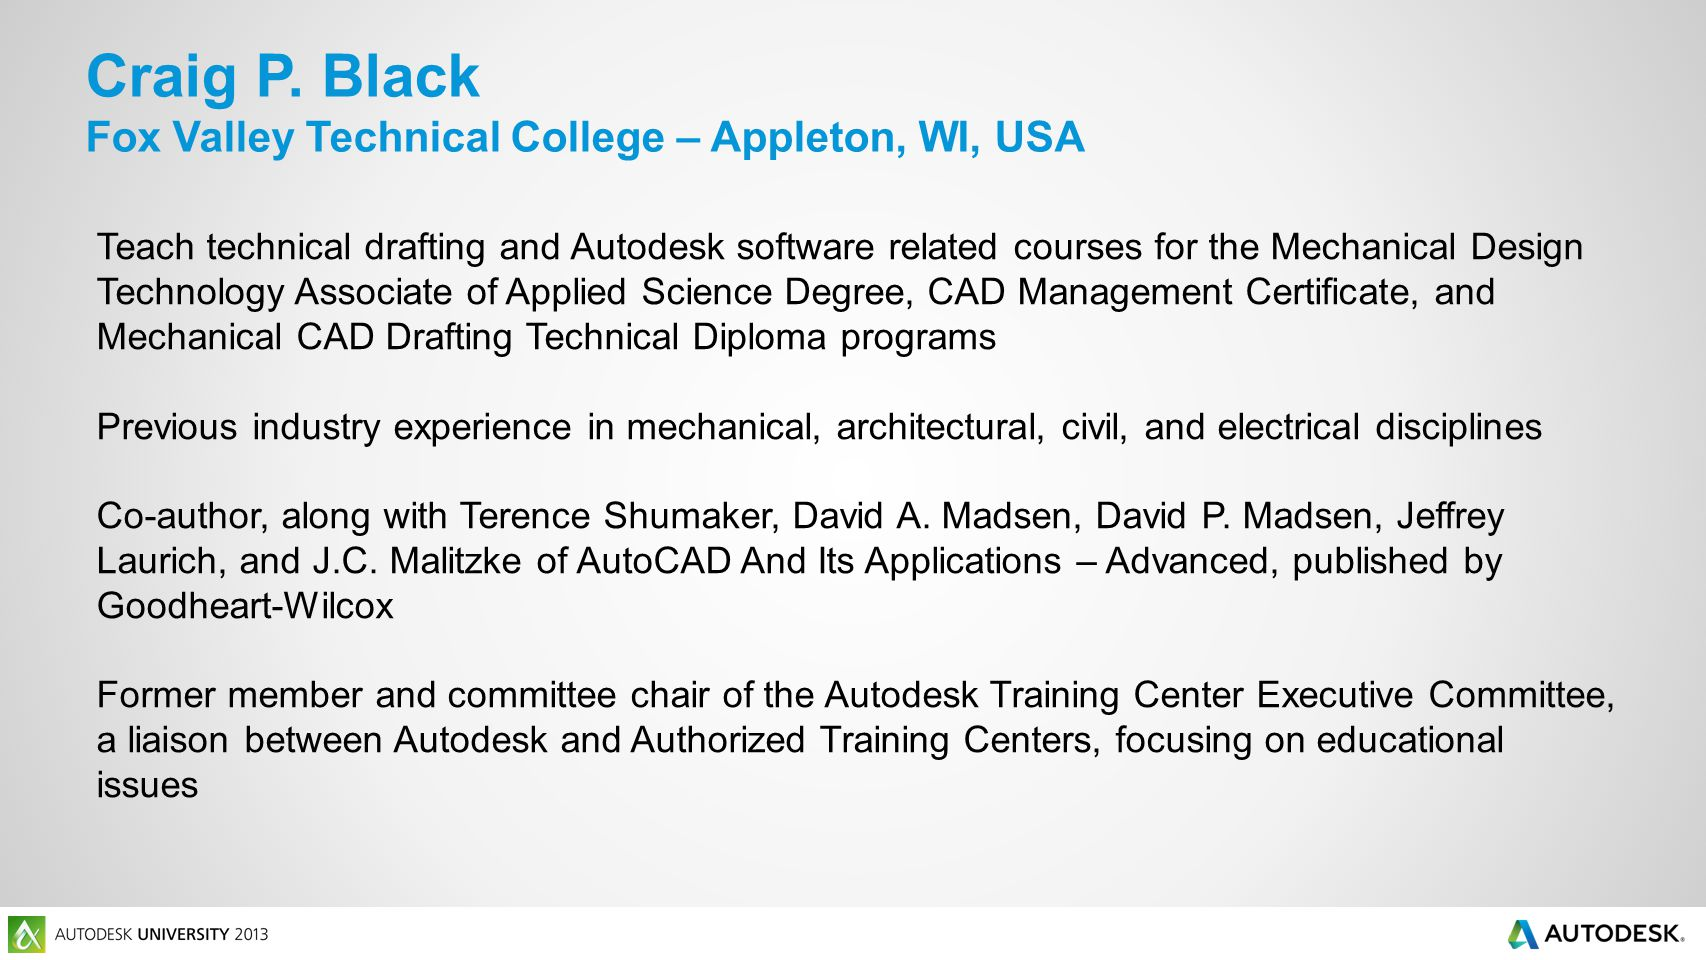 Teach technical drafting and Autodesk software related courses for the Mechanical Design Technology Associate of Applied Science Degree, CAD Managemen